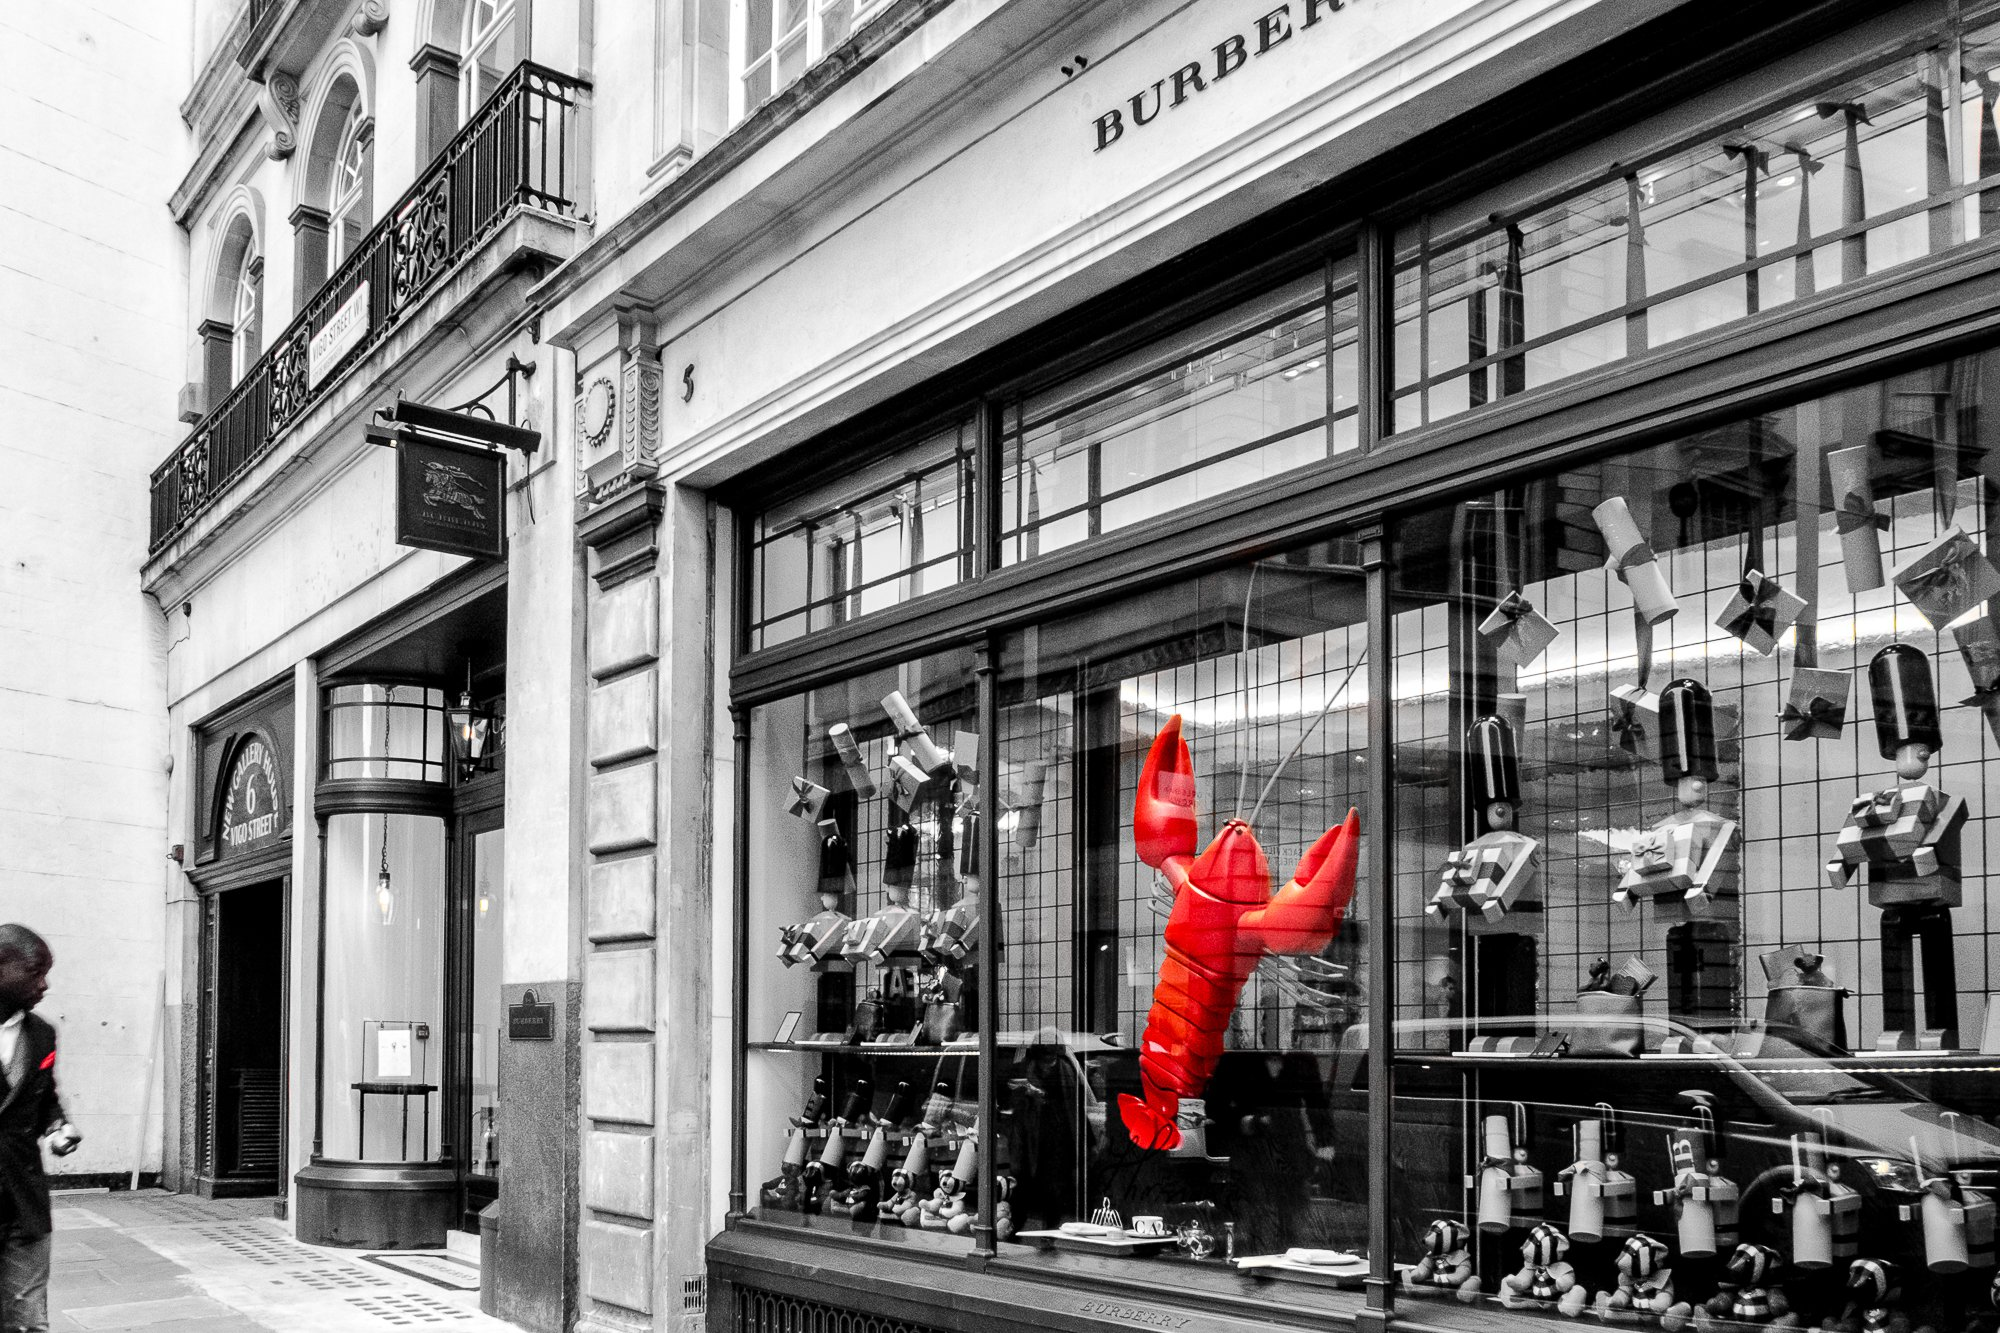 Shop front in black & white with red lobster